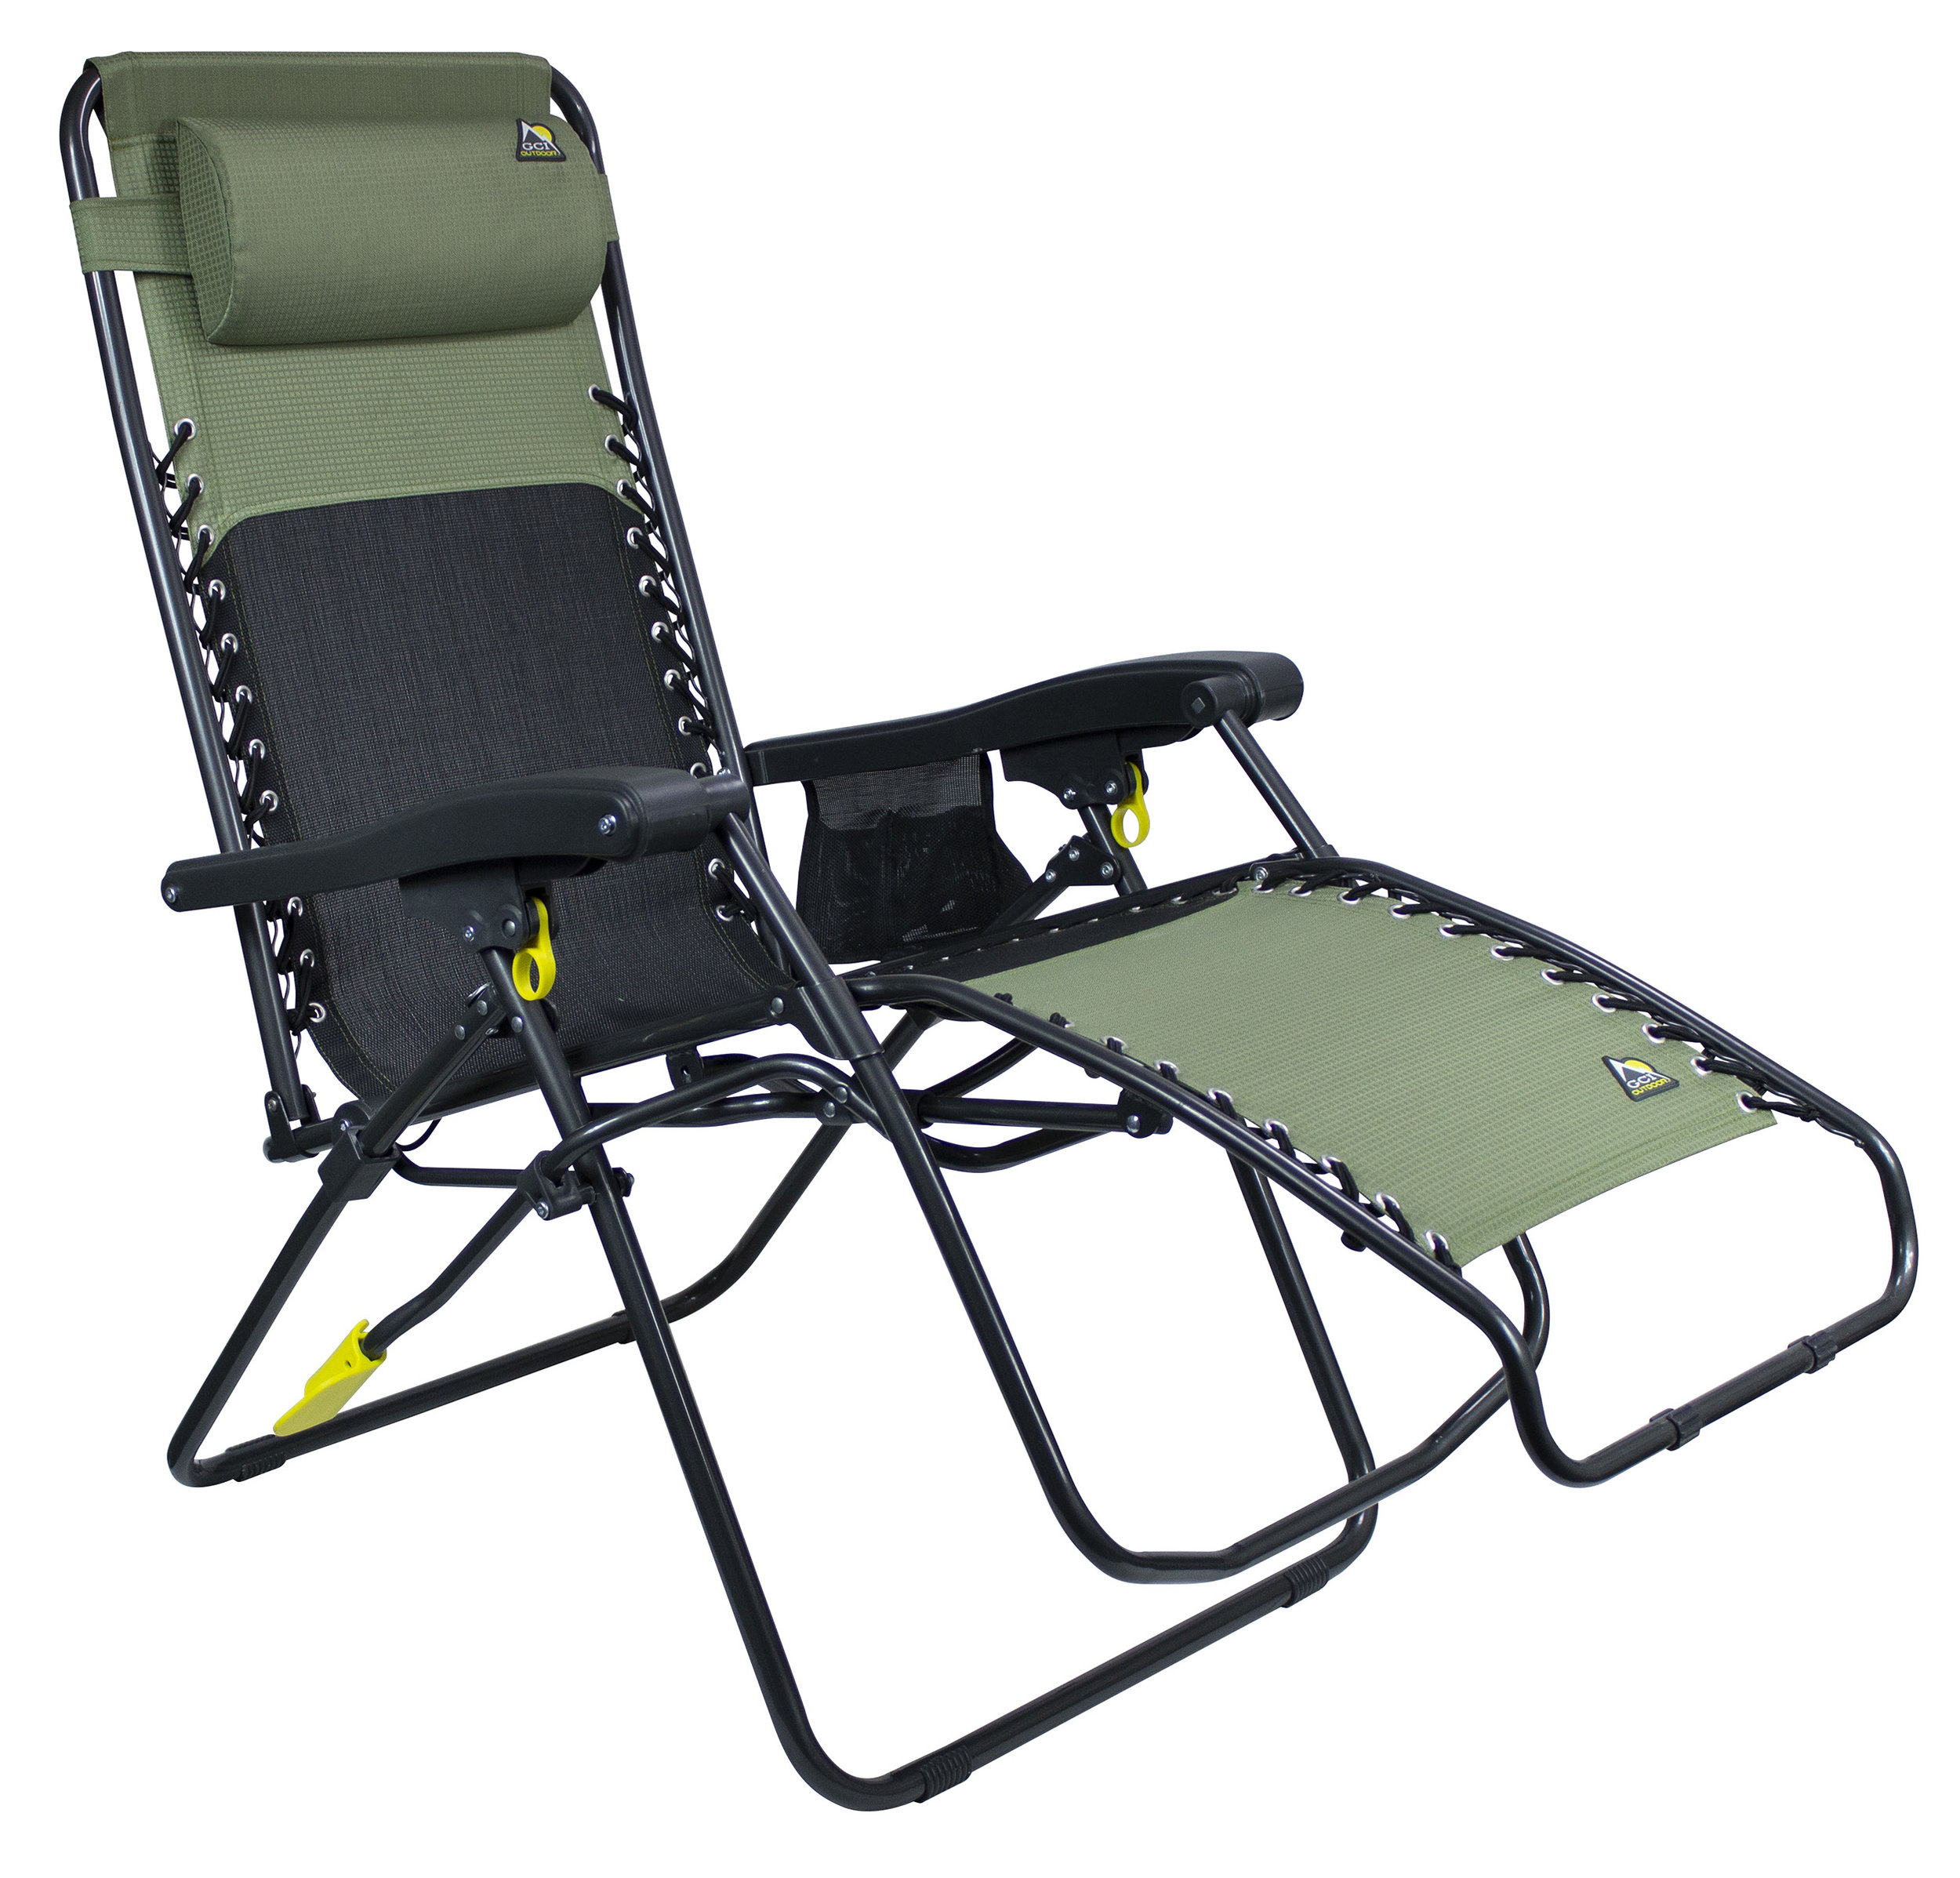 gci-outdoor-freeform-zg-lounger.jpg